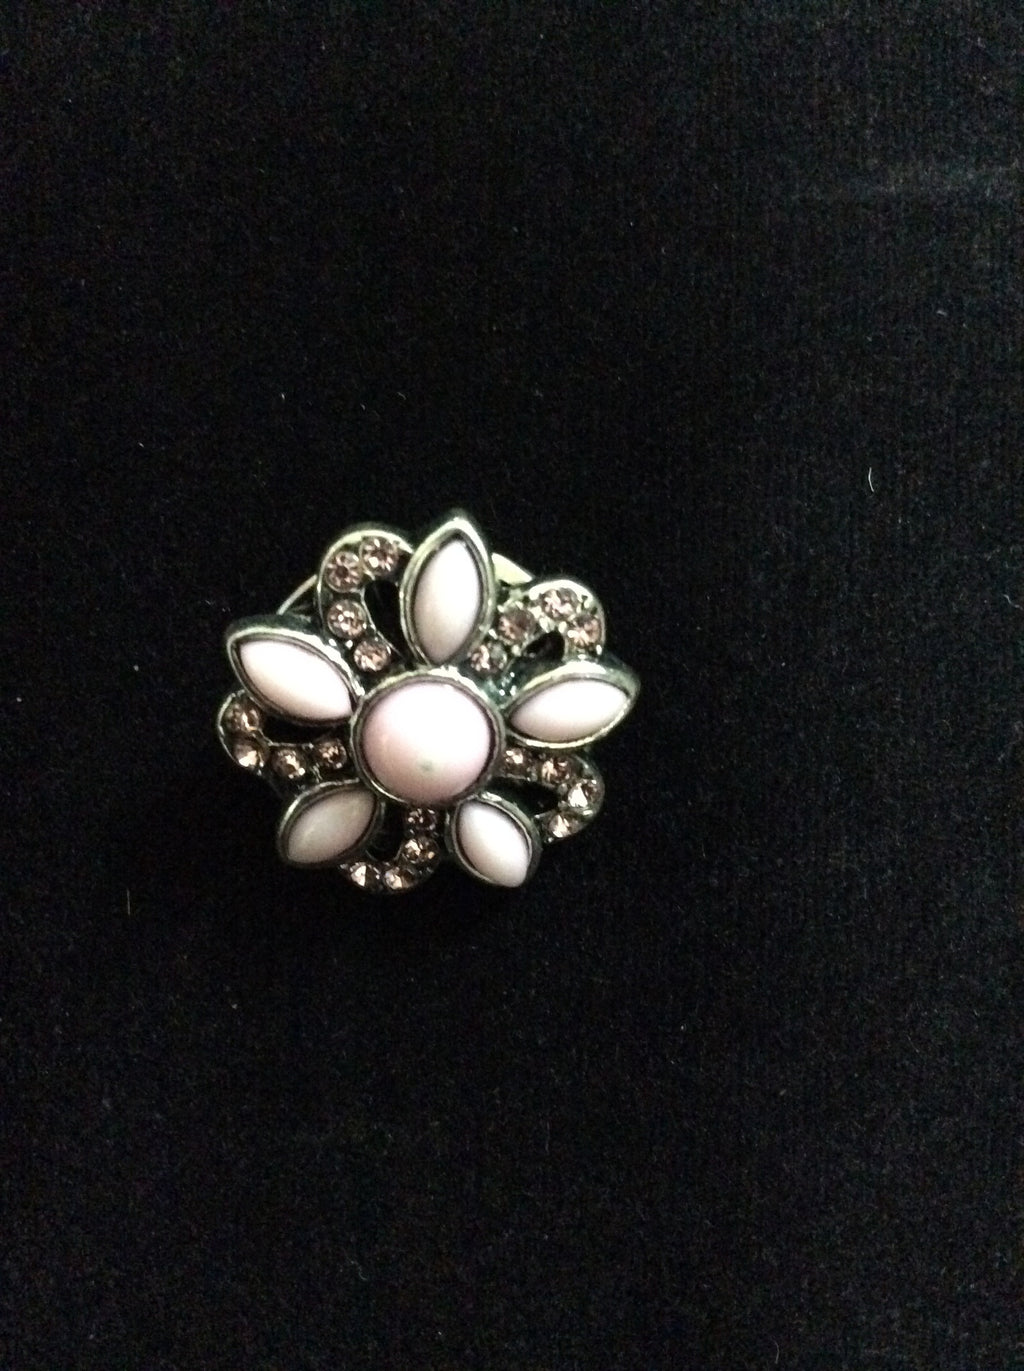 NPF - Snap - Sparkly Silver and White Flower